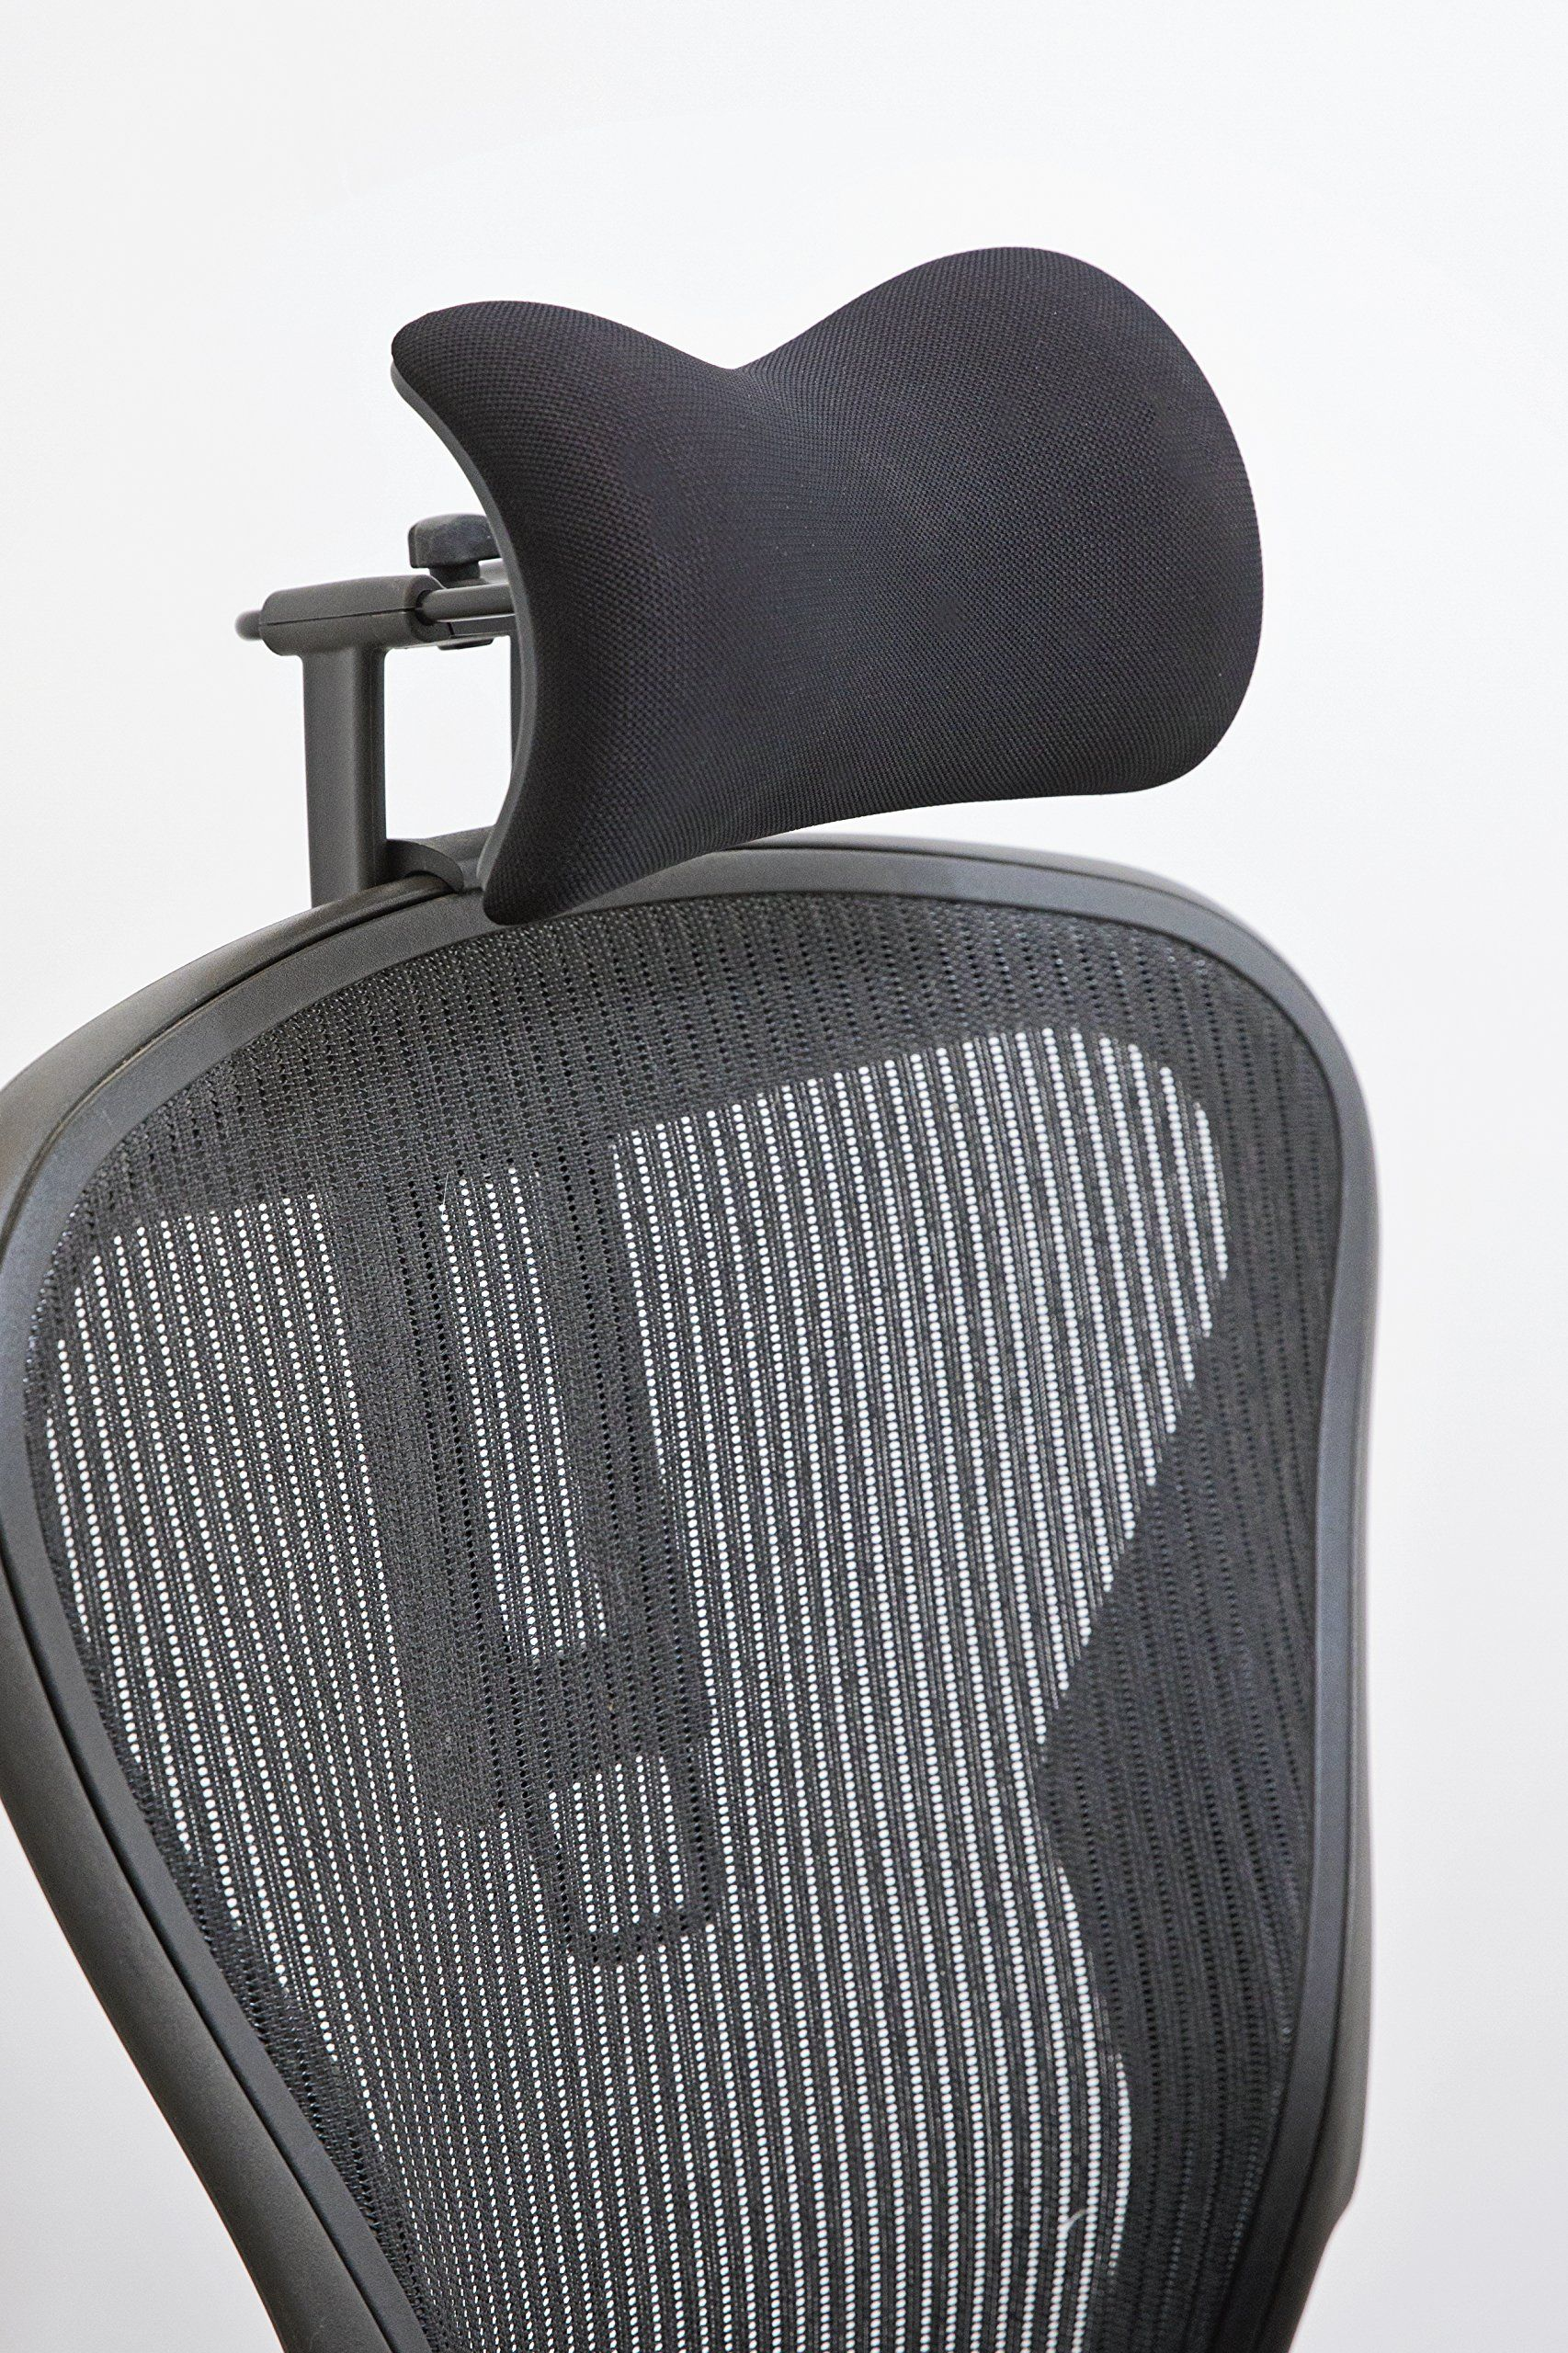 Atlas Headrest Designed For The Herman Miller Aeron Chair Click On The Image For Additional Details This Is An Cool Chairs Herman Miller Aeron Chair Chair